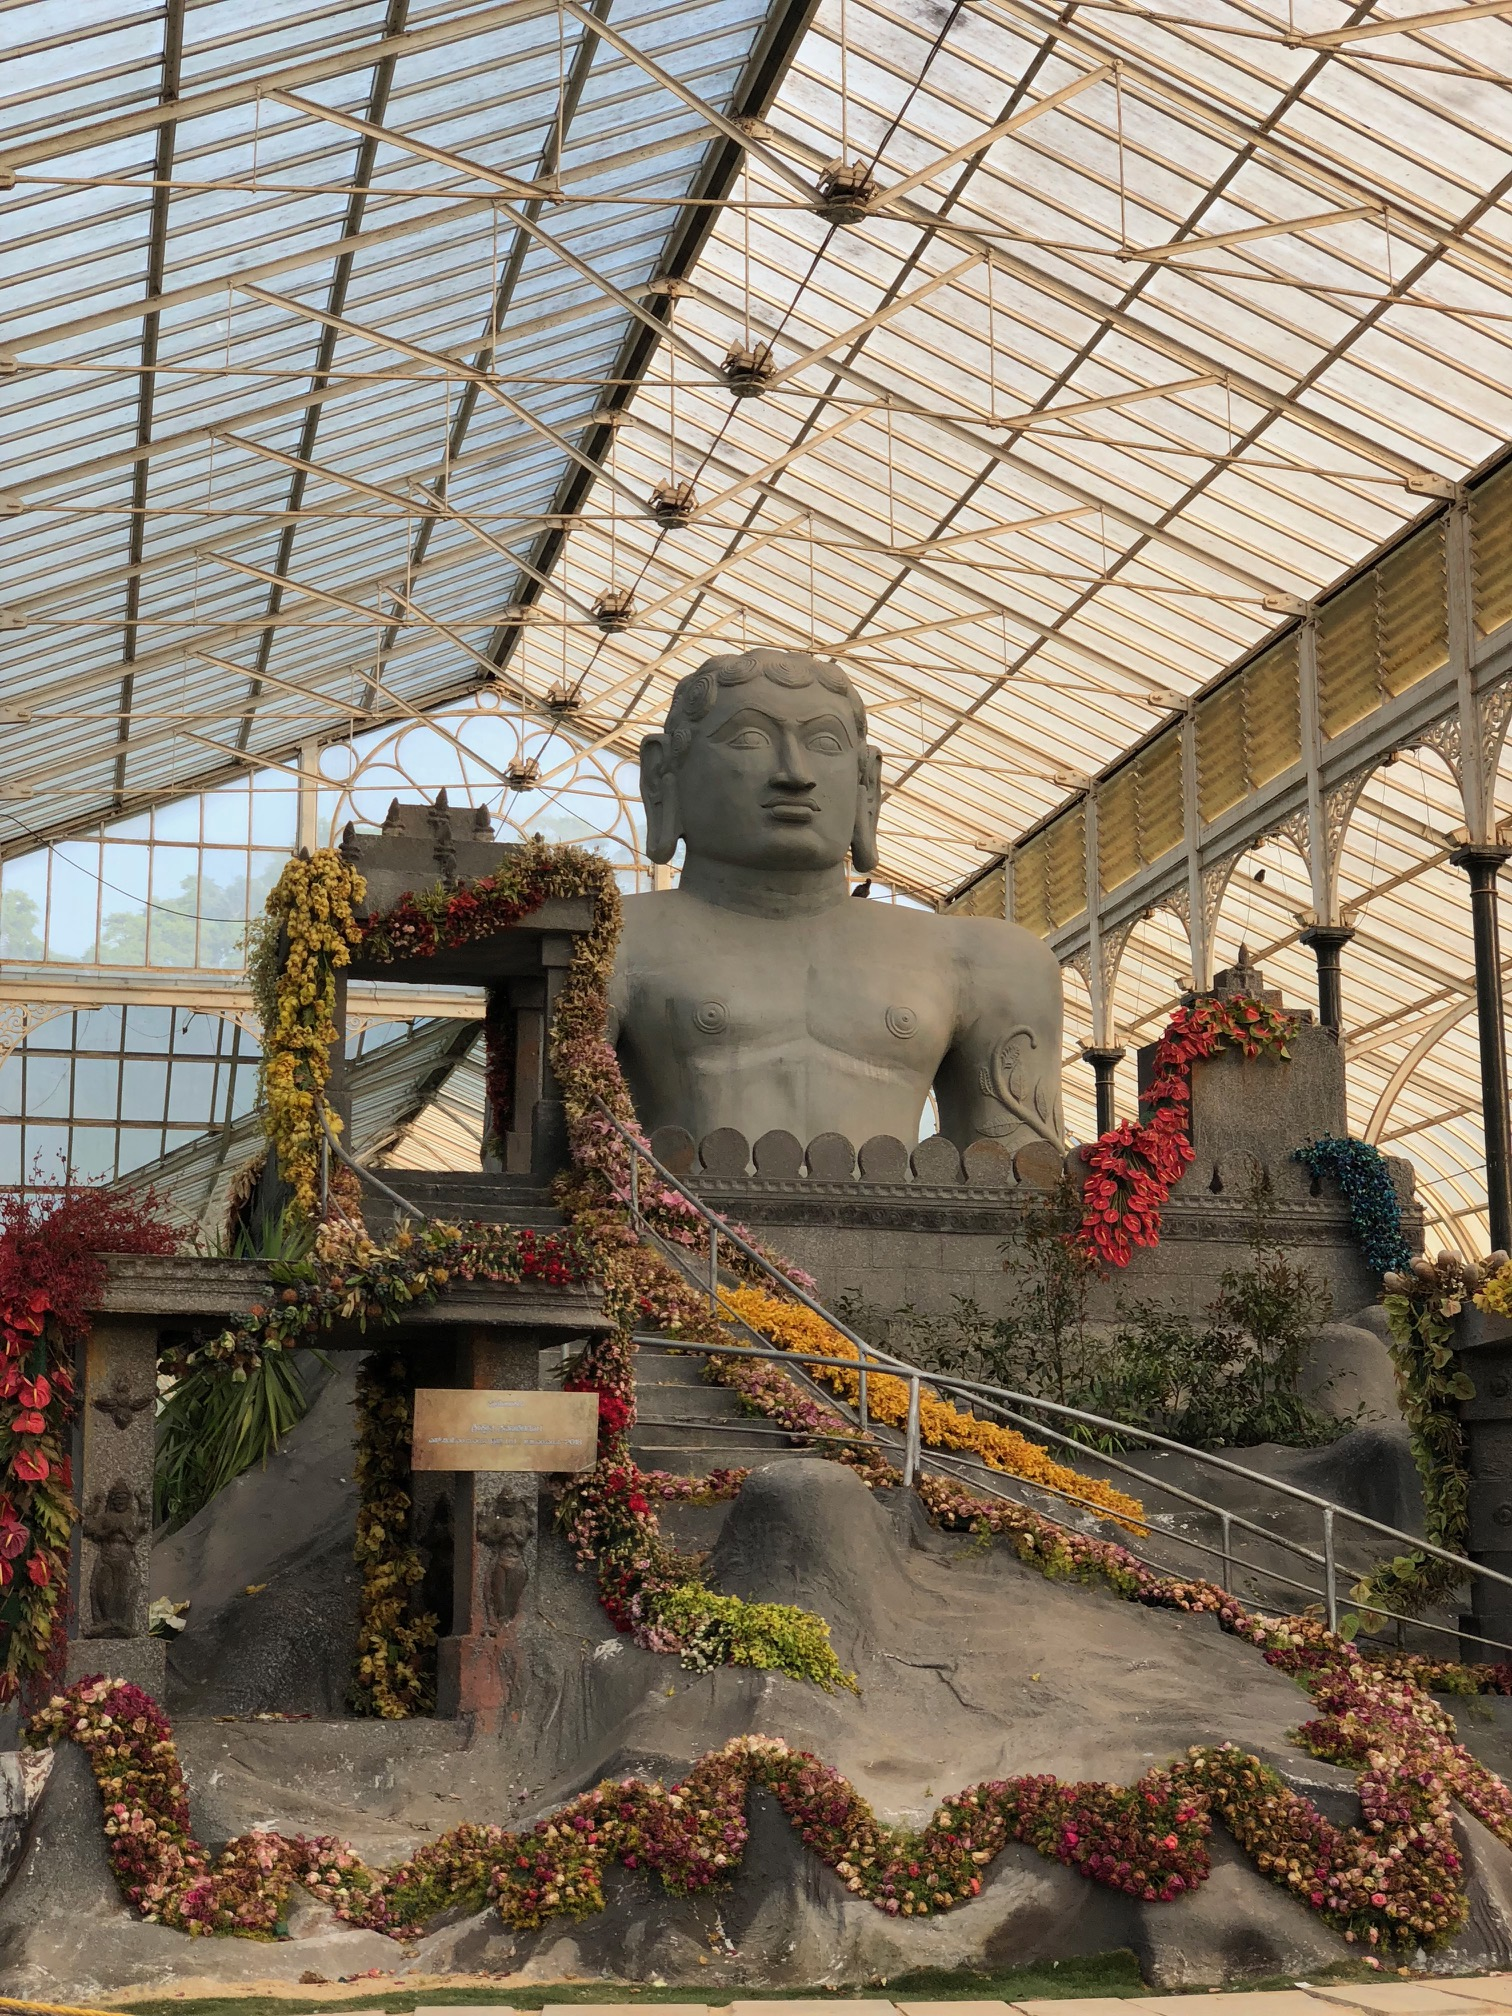 Inside a glass building, an enormous stone figure sits behind a castle wall covered with flowers.